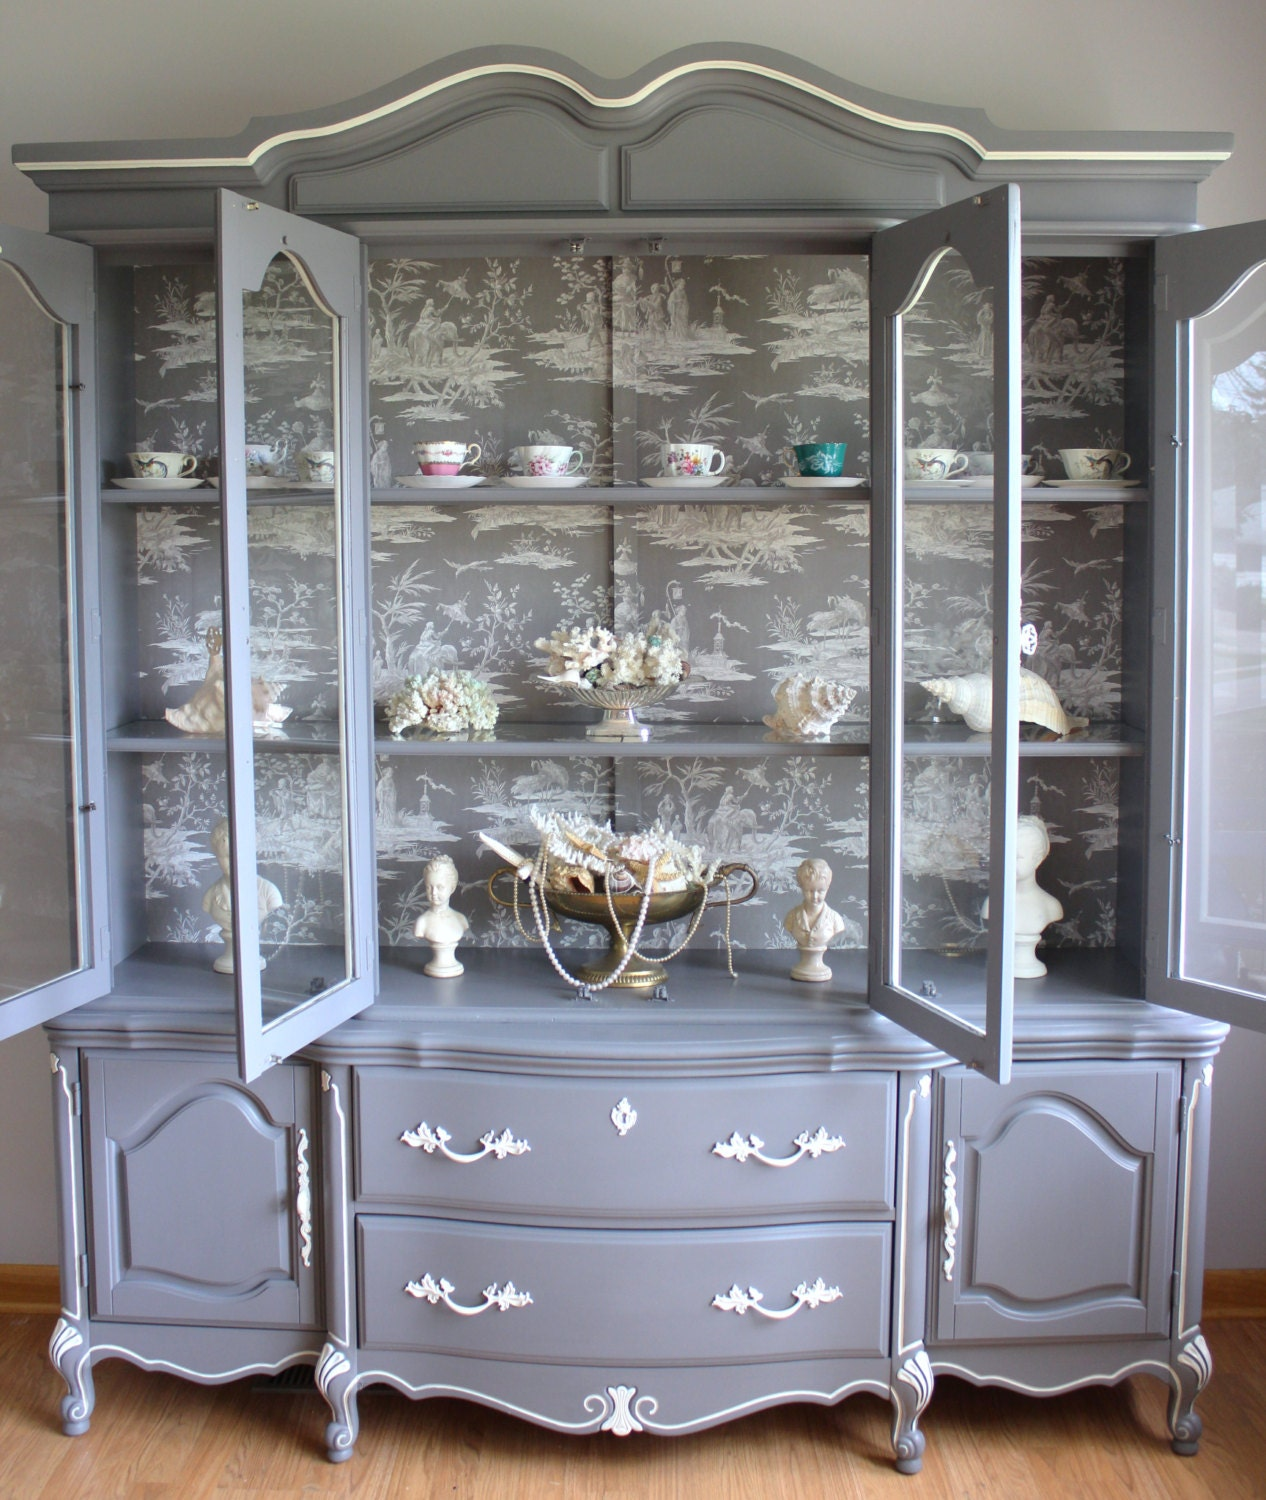 French Provincial Kitchen Cabinets: French China Cabinet/french Provincial Reserve For Annie